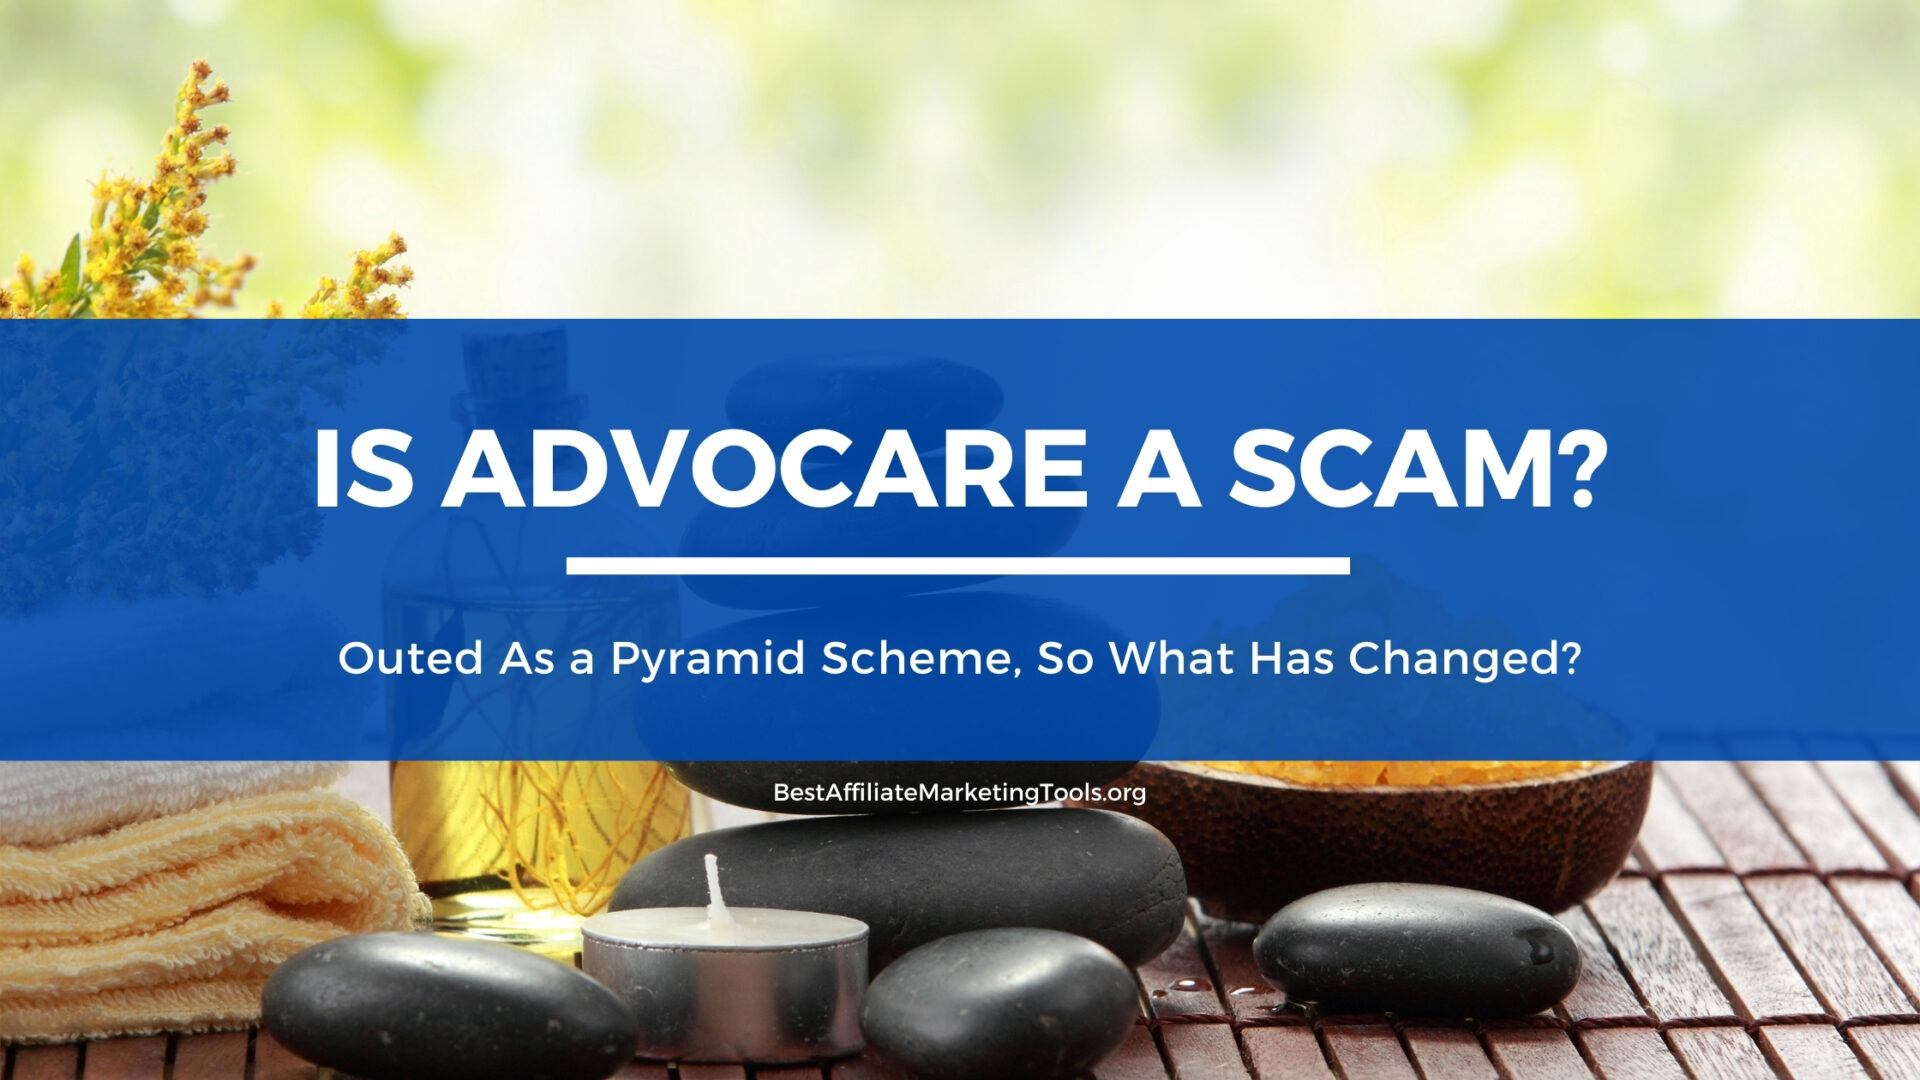 Is Advocare A Scam